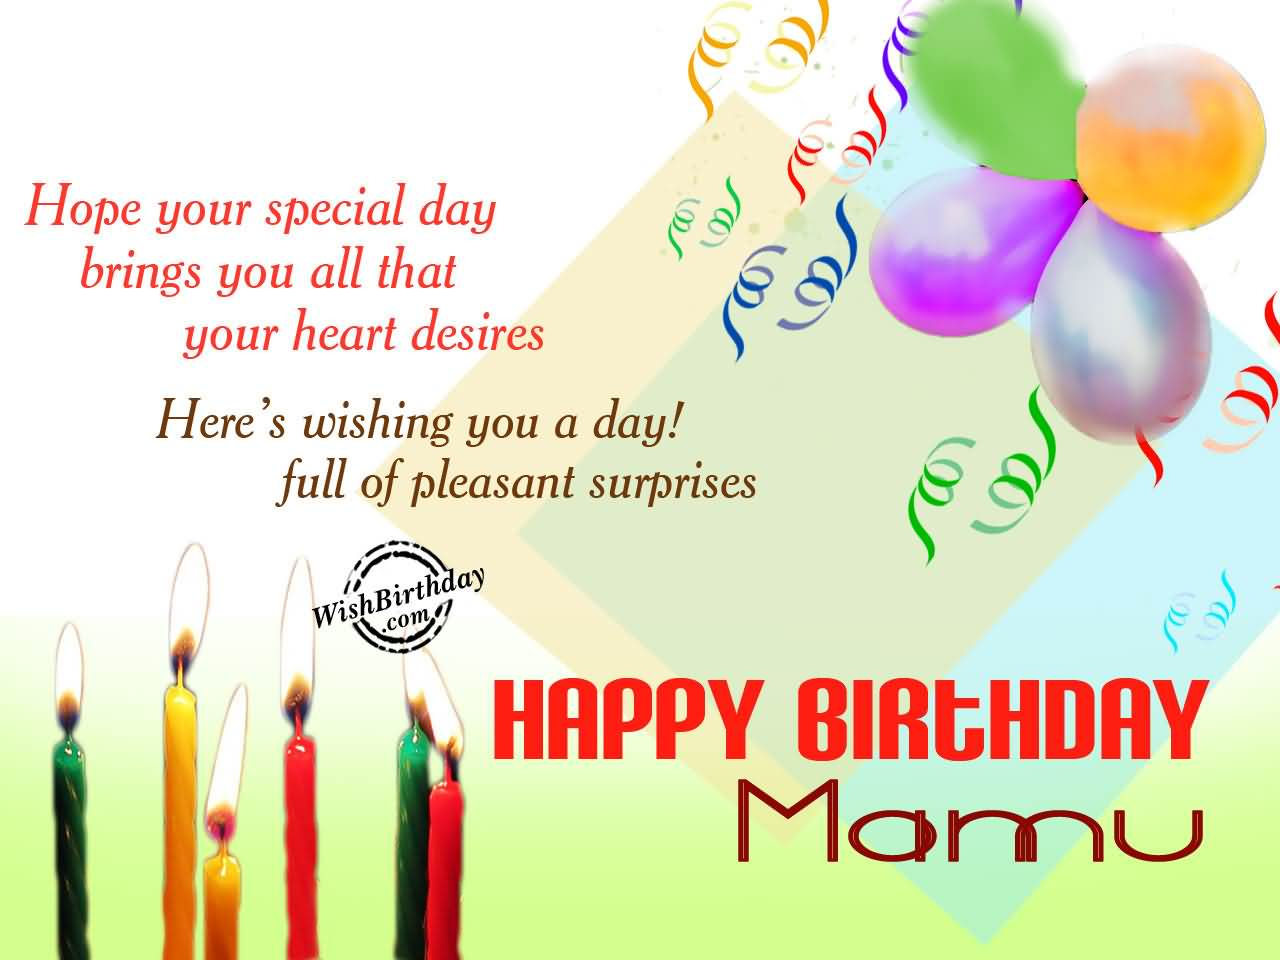 Hope Your Special Day Brings You All That Happy Birthday Mamu